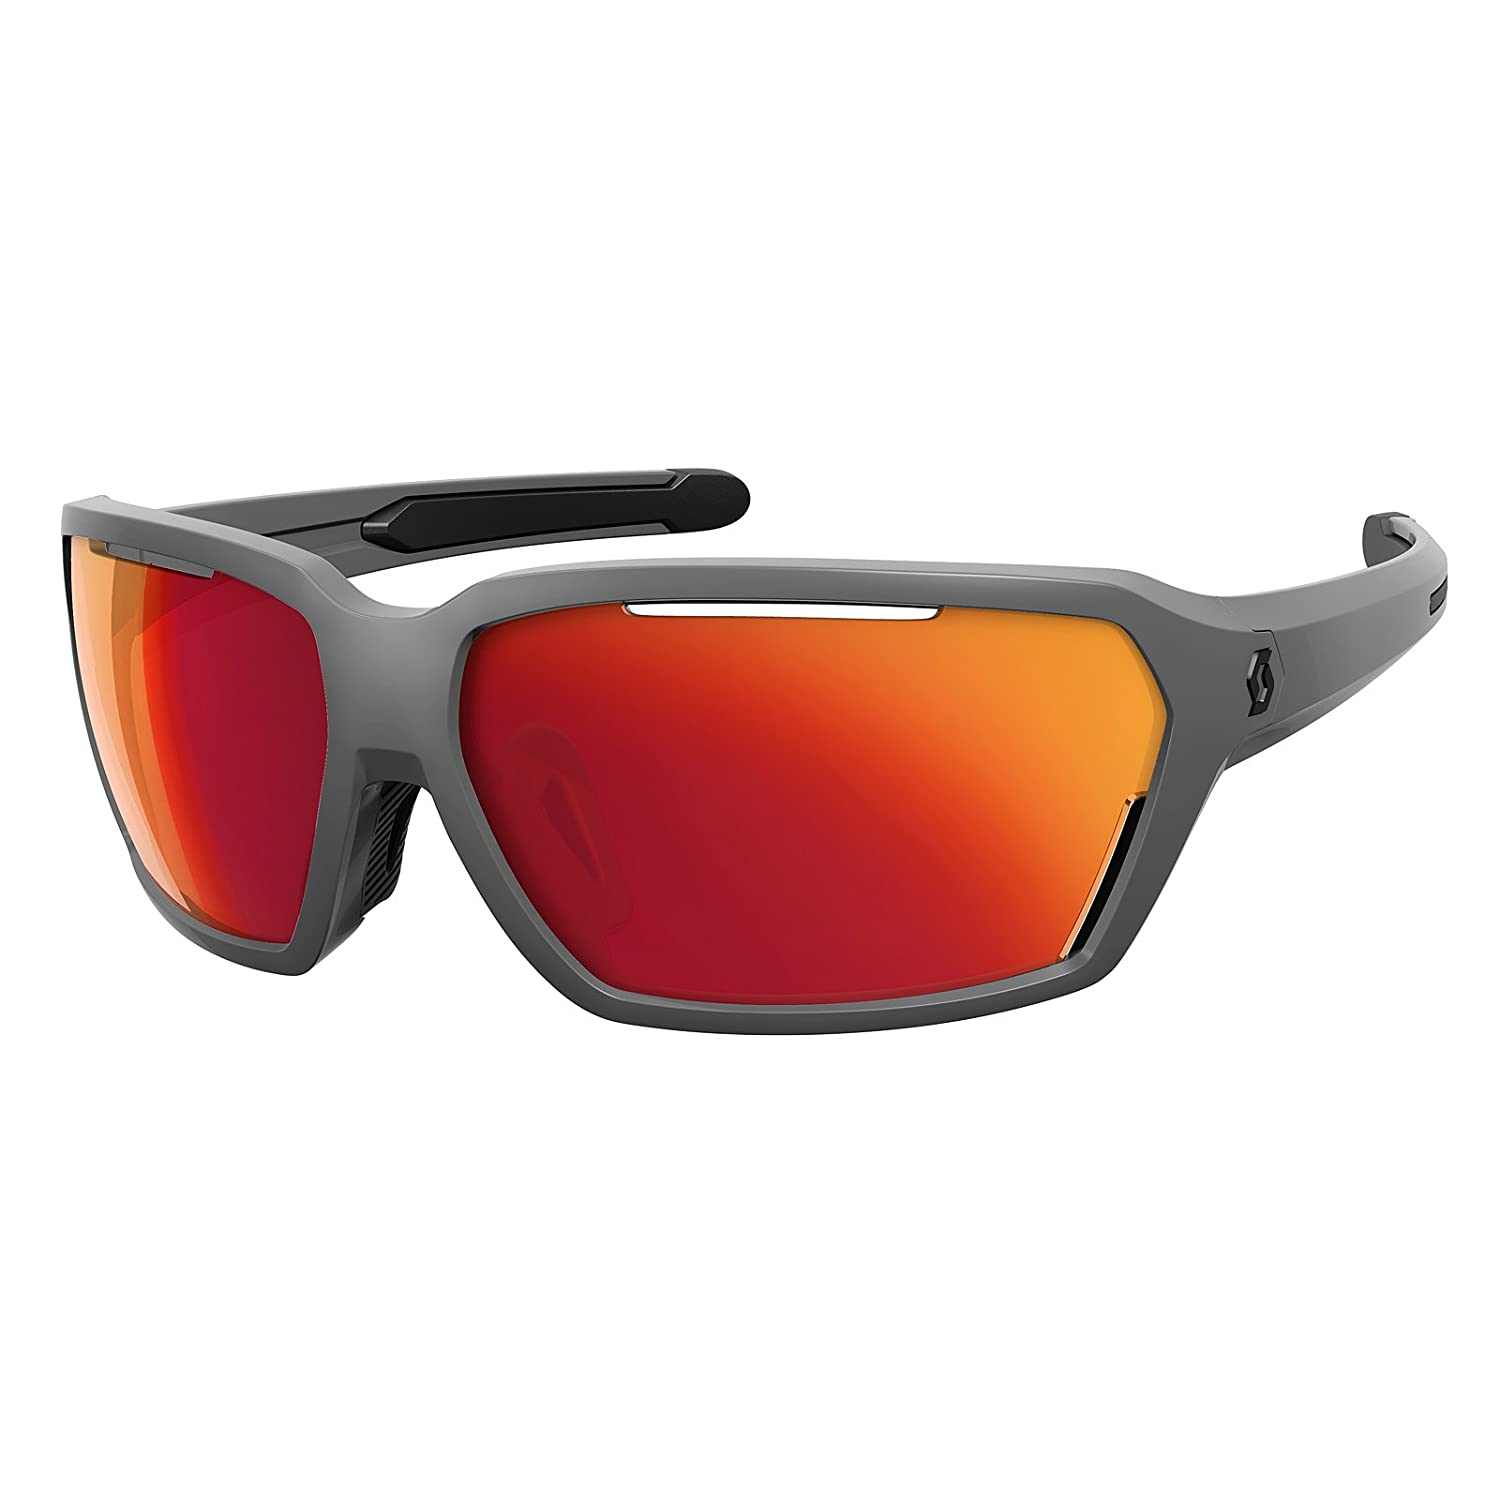 Scott Vector Fahrrad Sport Brille grau/rot chrome